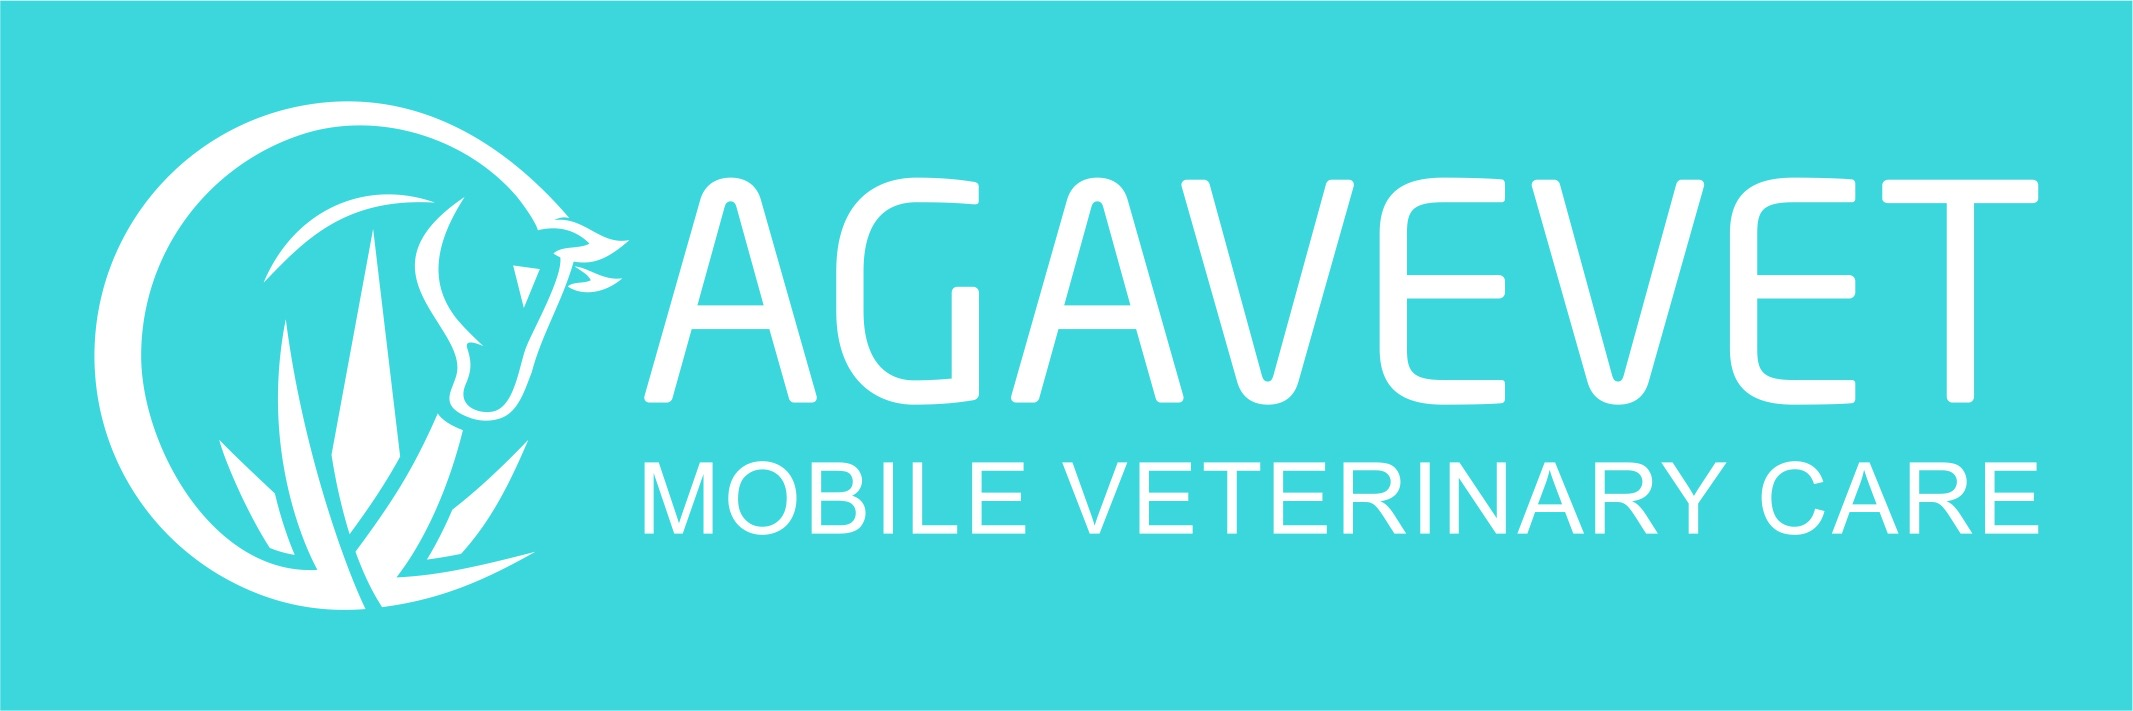 Offering Mobile Vet Care - for horses and hobby farm animals: digital x-ray, ultrasound, dentistry, diagnostics, medicine, field surgery, and more!